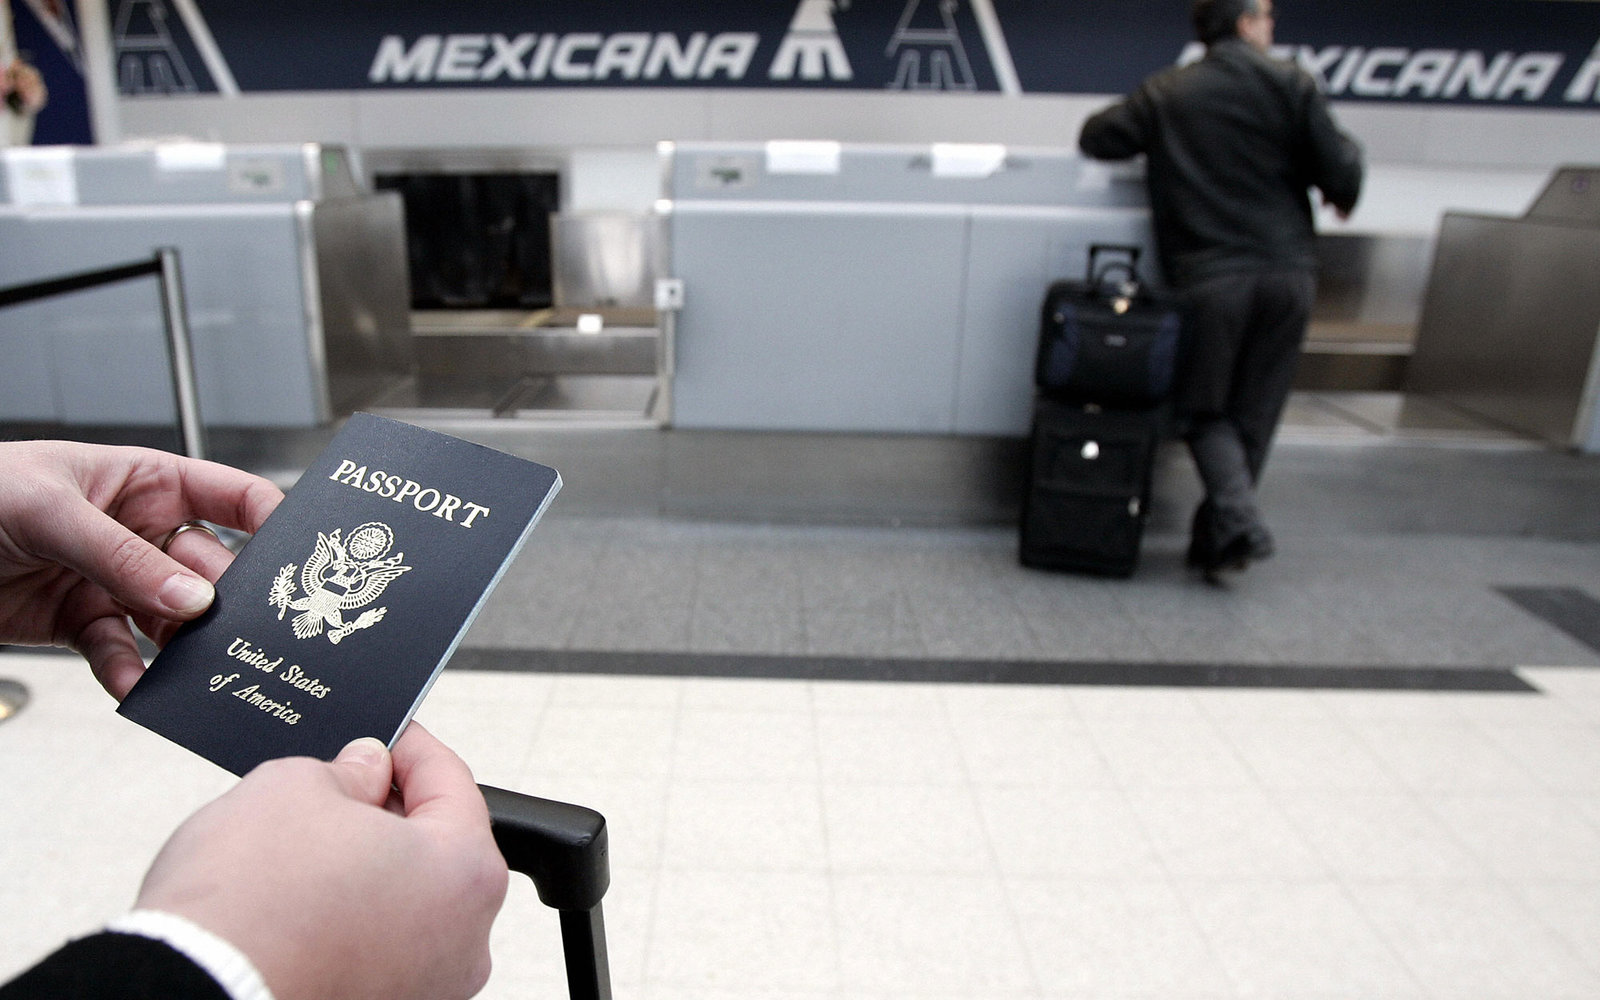 Chicago, UNITED STATES:  A passenger waits in line with her passport 23 January, 2007 before her Mexicana Air flight out of Chicago O'Hare International airport in Chicago, Illinois.  As of 23 January, all Americans, Mexicans, Canadians and Bermudians tra